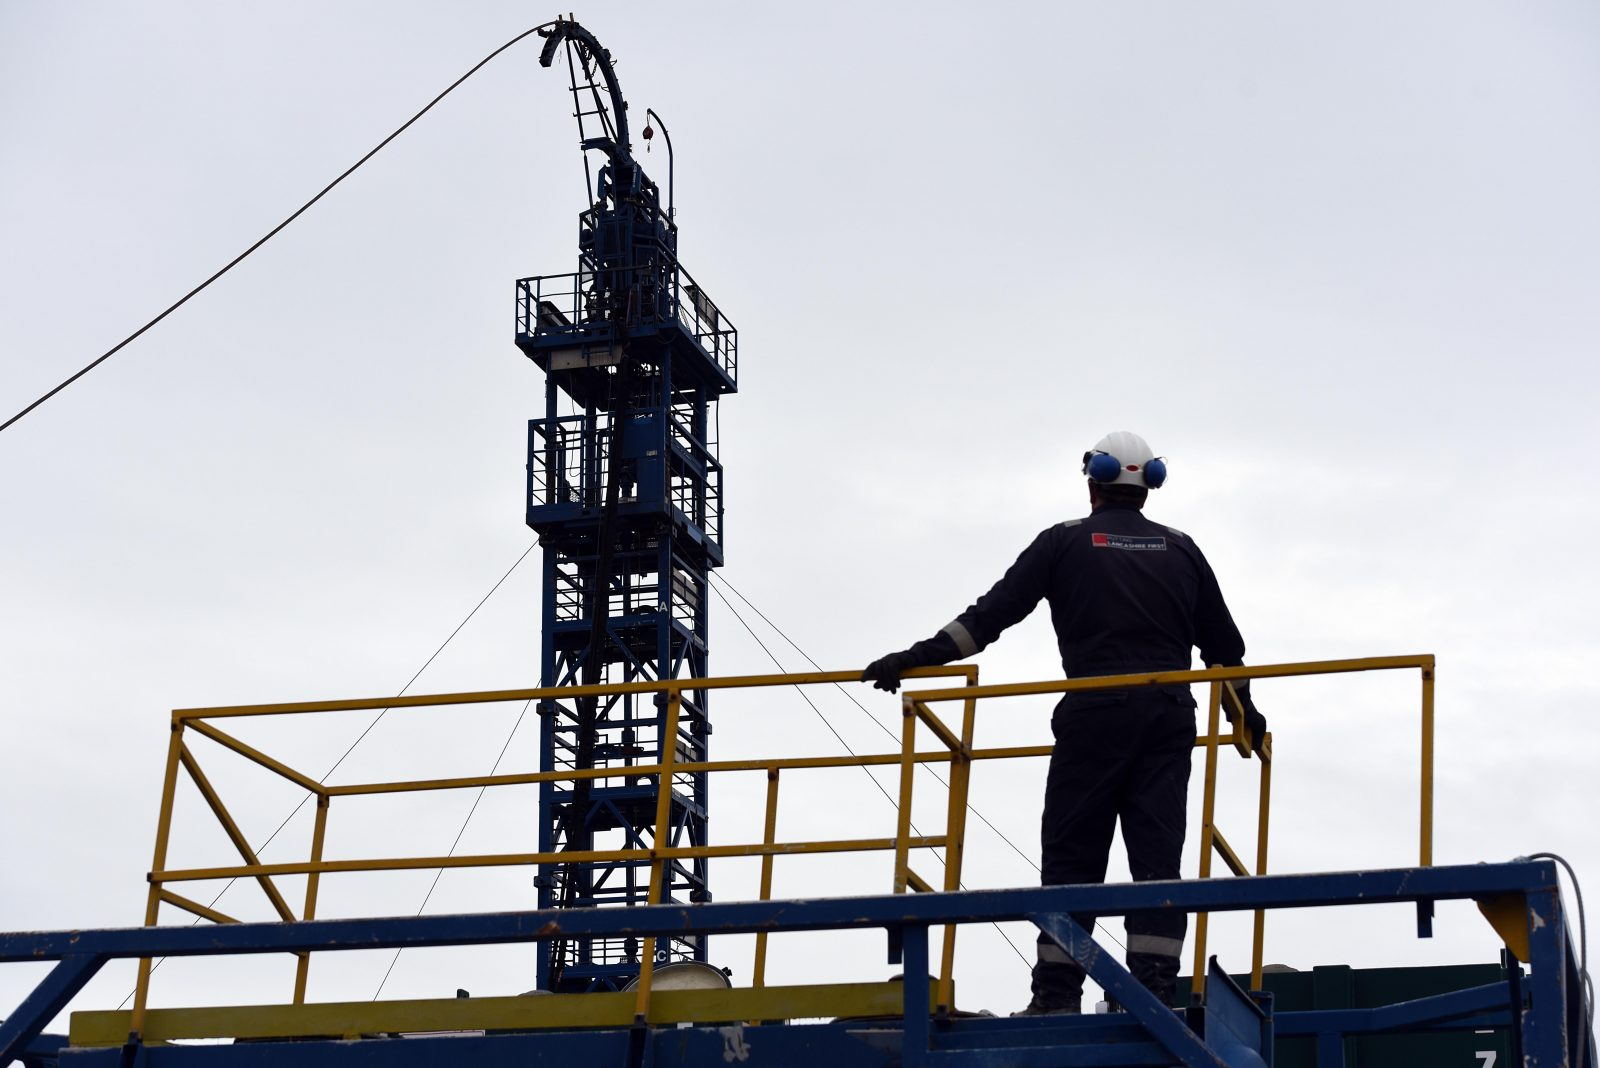 Breaking ground: Government signals possible change on fracking quake limit